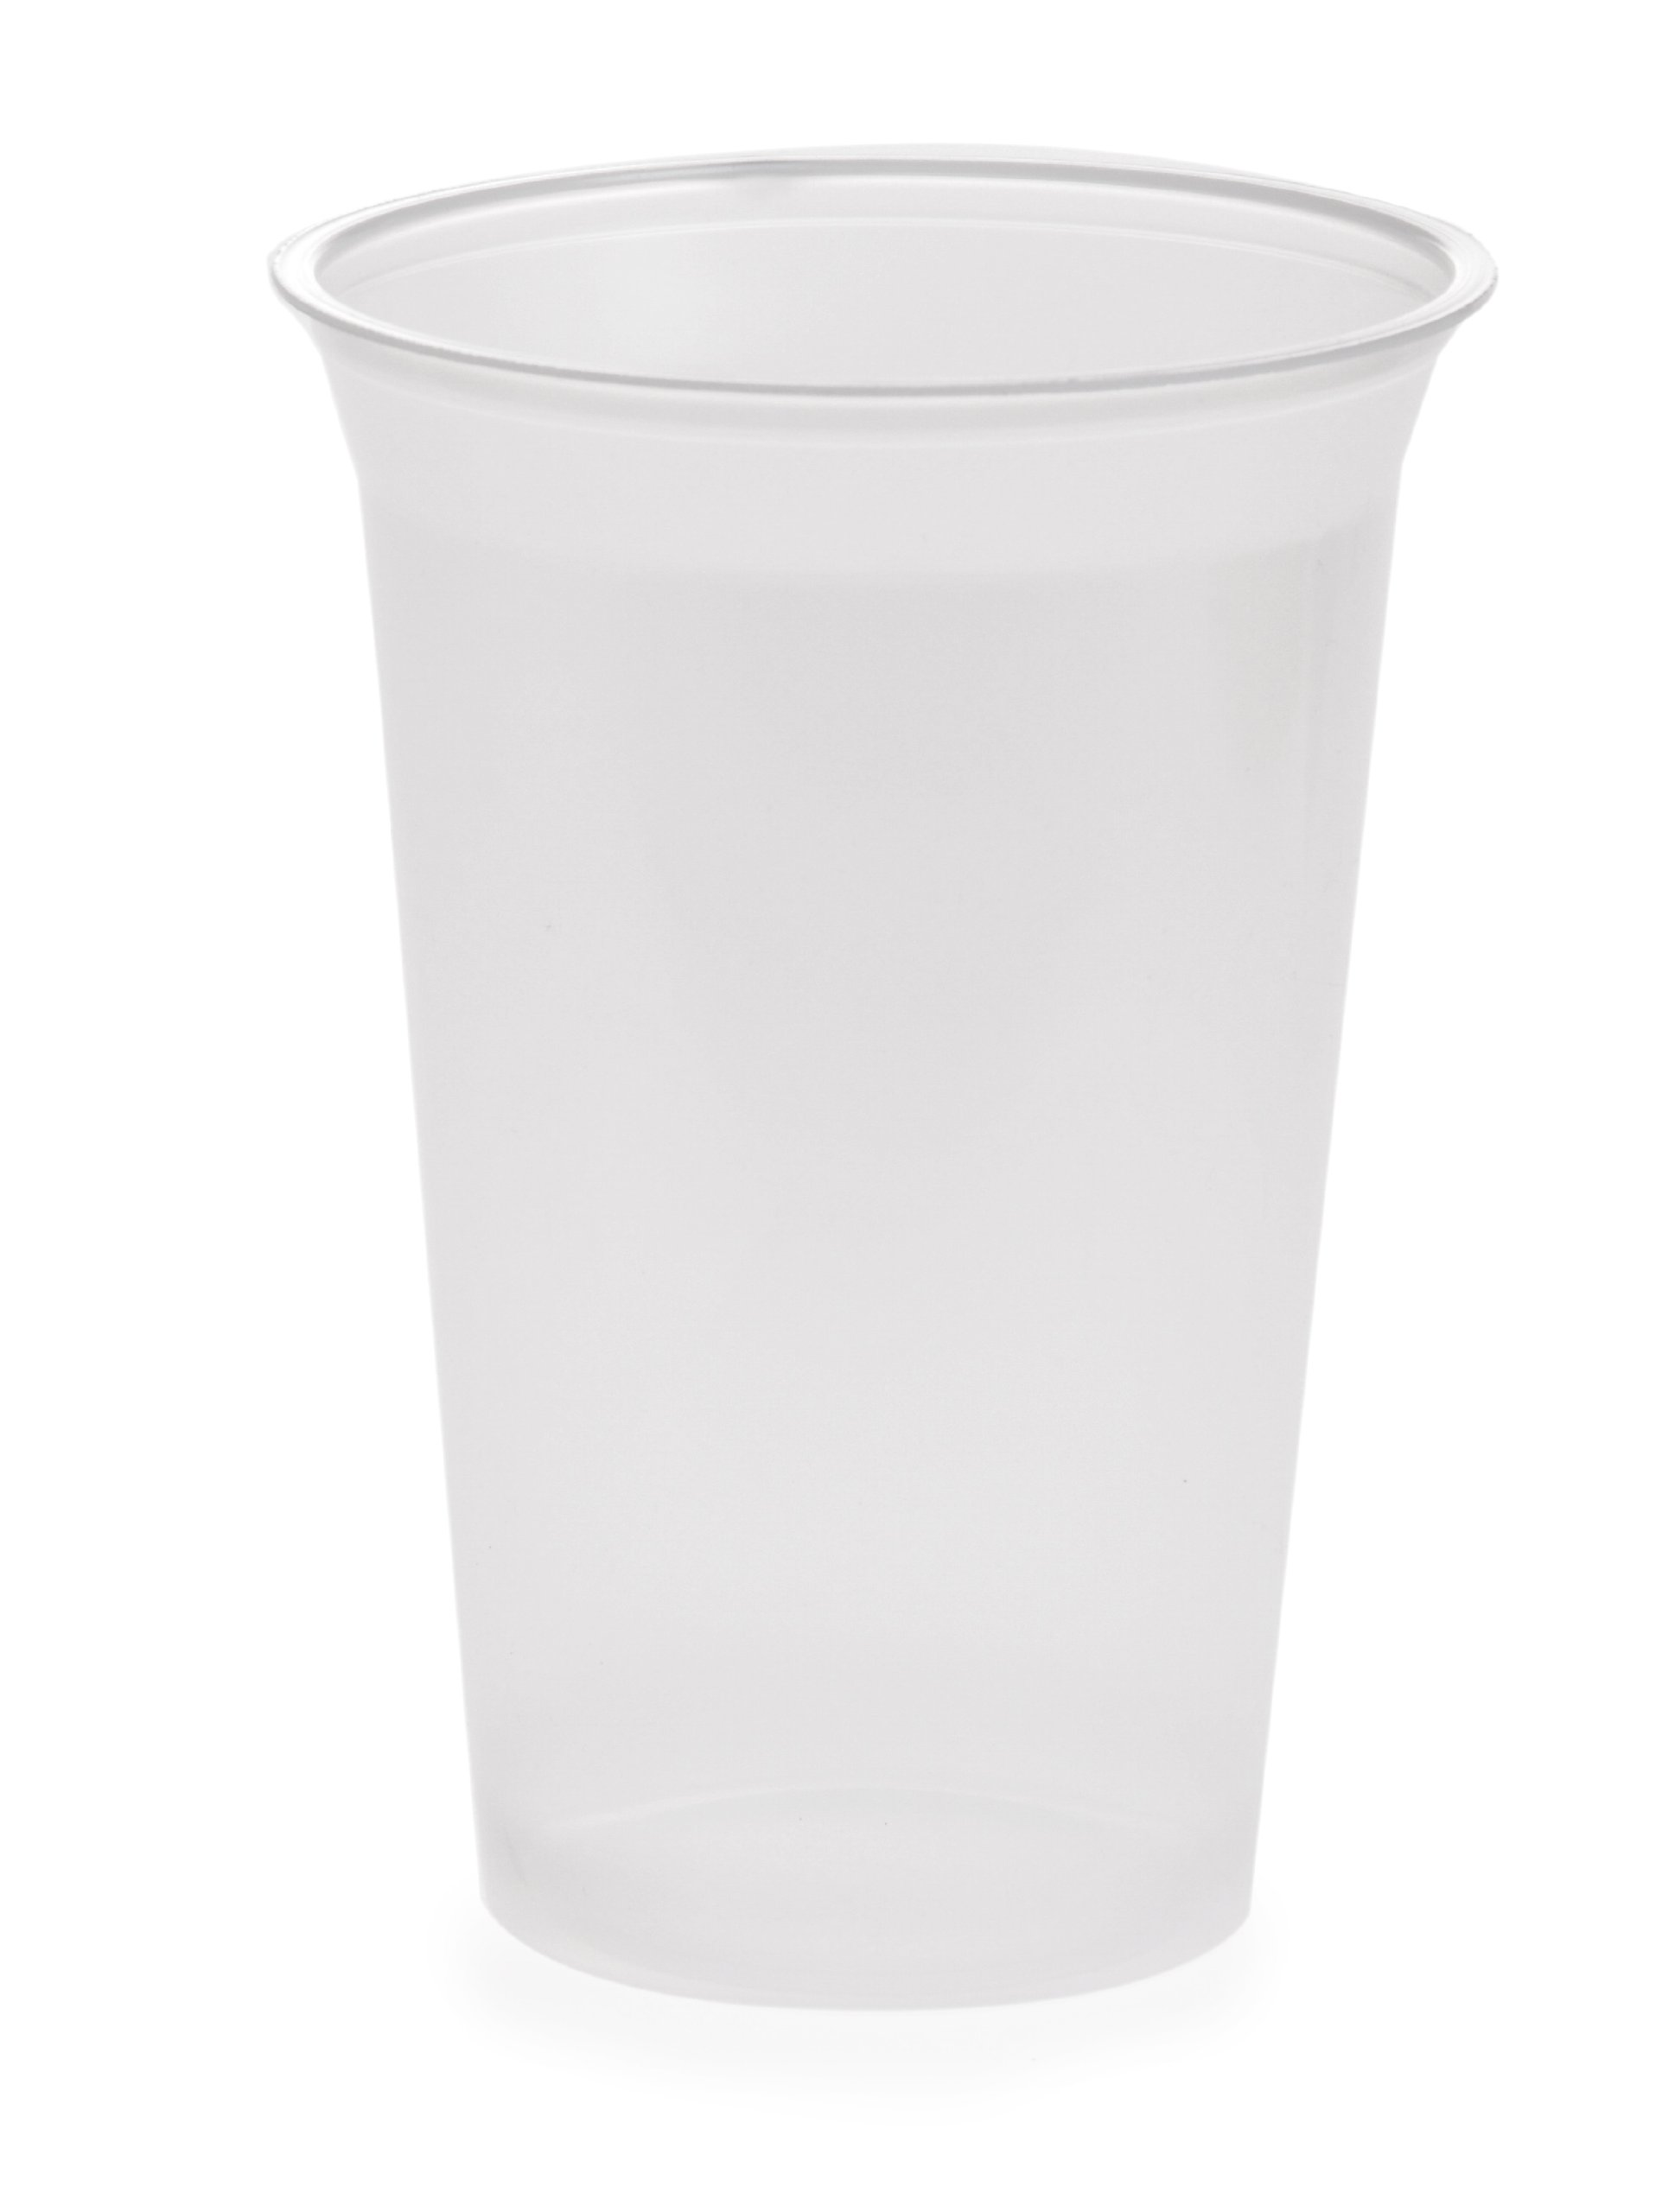 Medline DYND80540 Accessories for 32 and 20 oz Insulated Carafes, Polyester (Pack of 500)